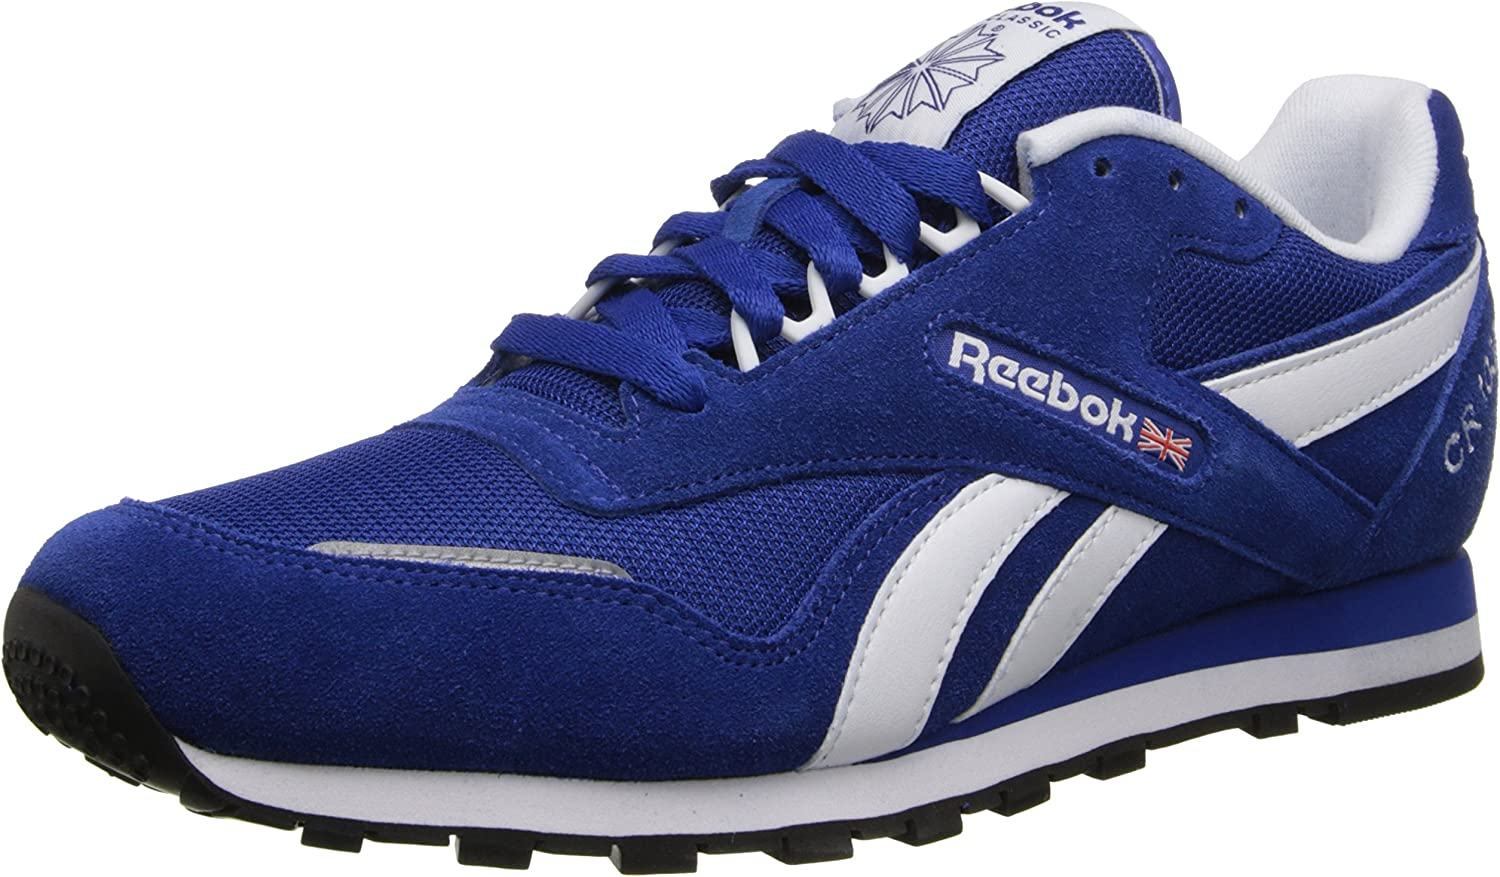 reebok men's cr 1000 txt